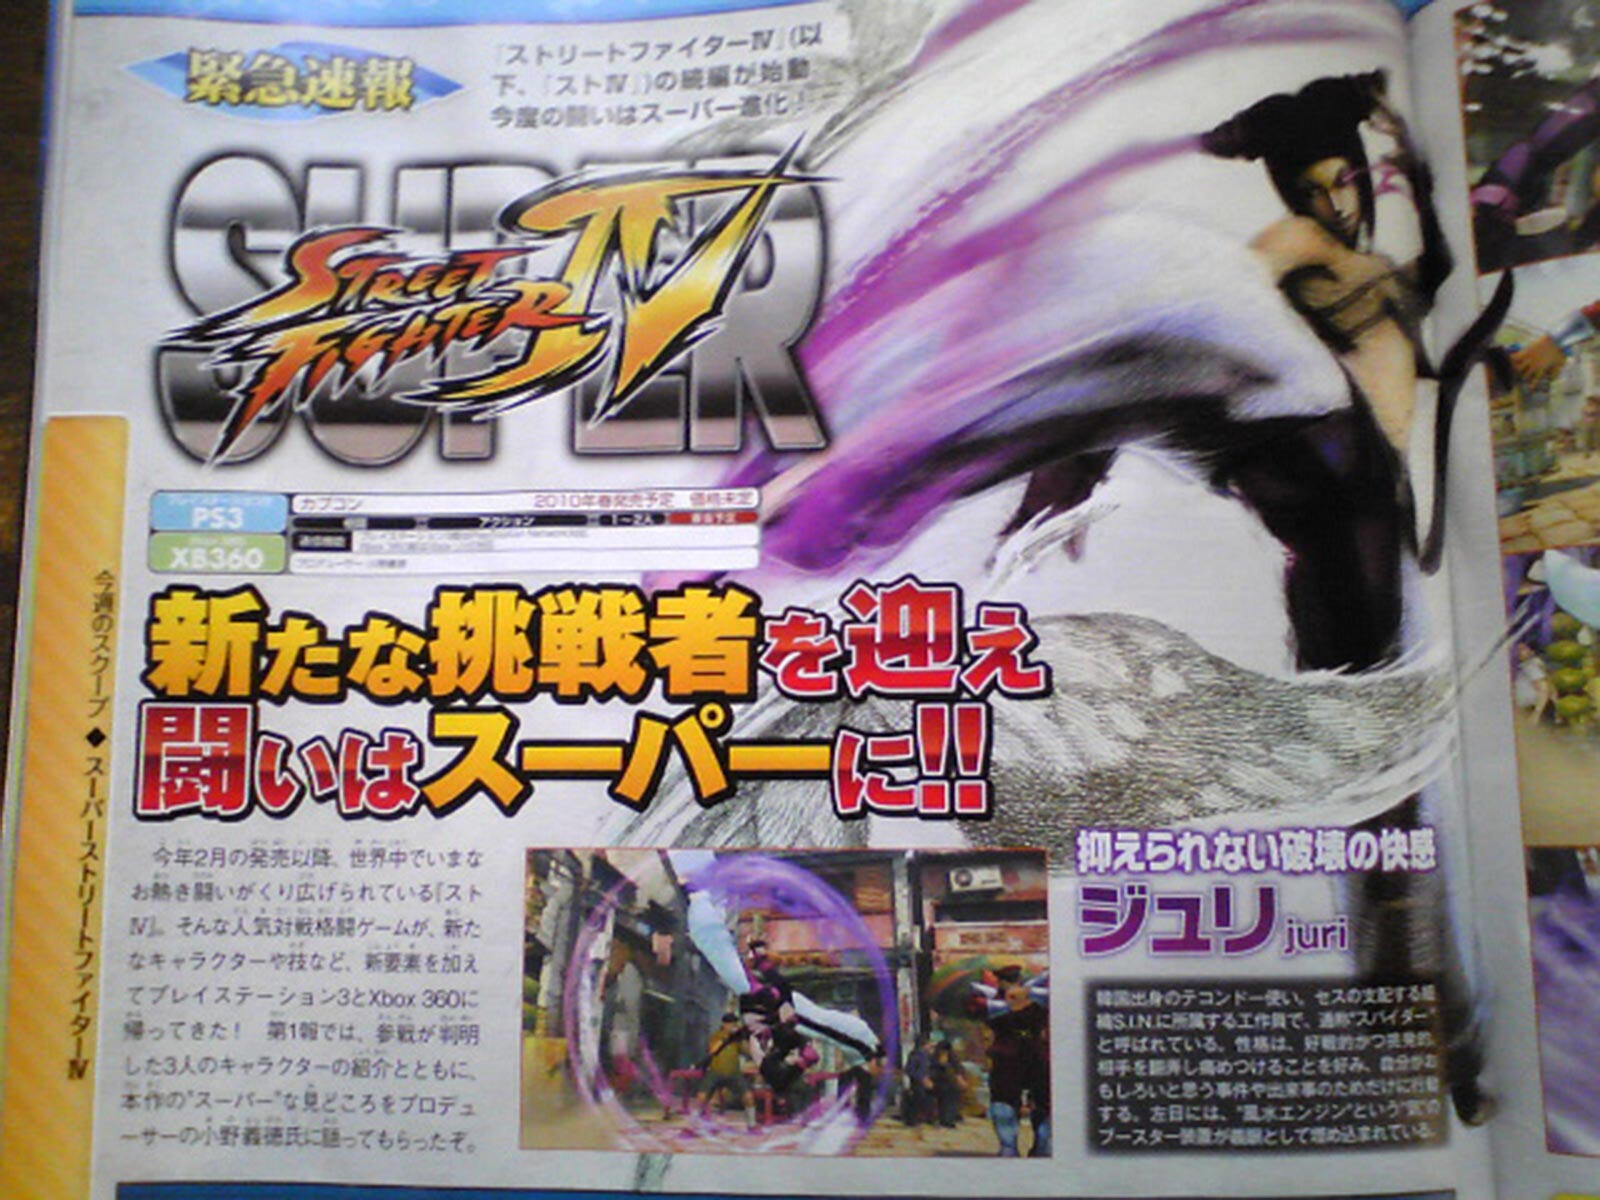 Another Famitsu scan showing Juri in Super Street Fighter 4